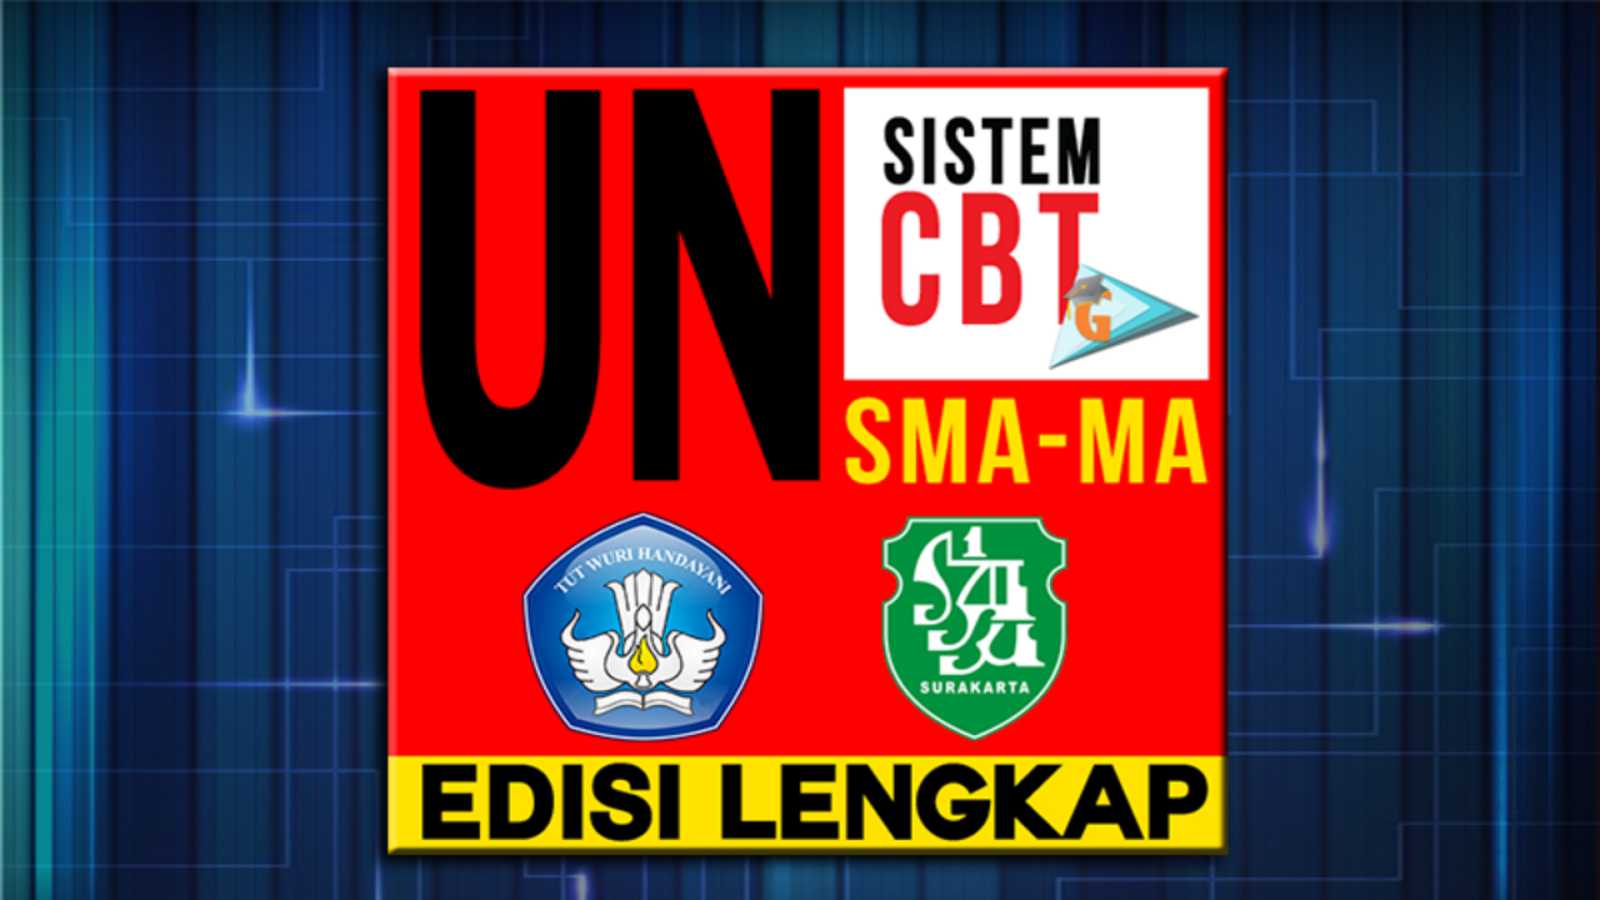 Cbt Un Sma Beta 1 0 Apk Download Android Education Apps